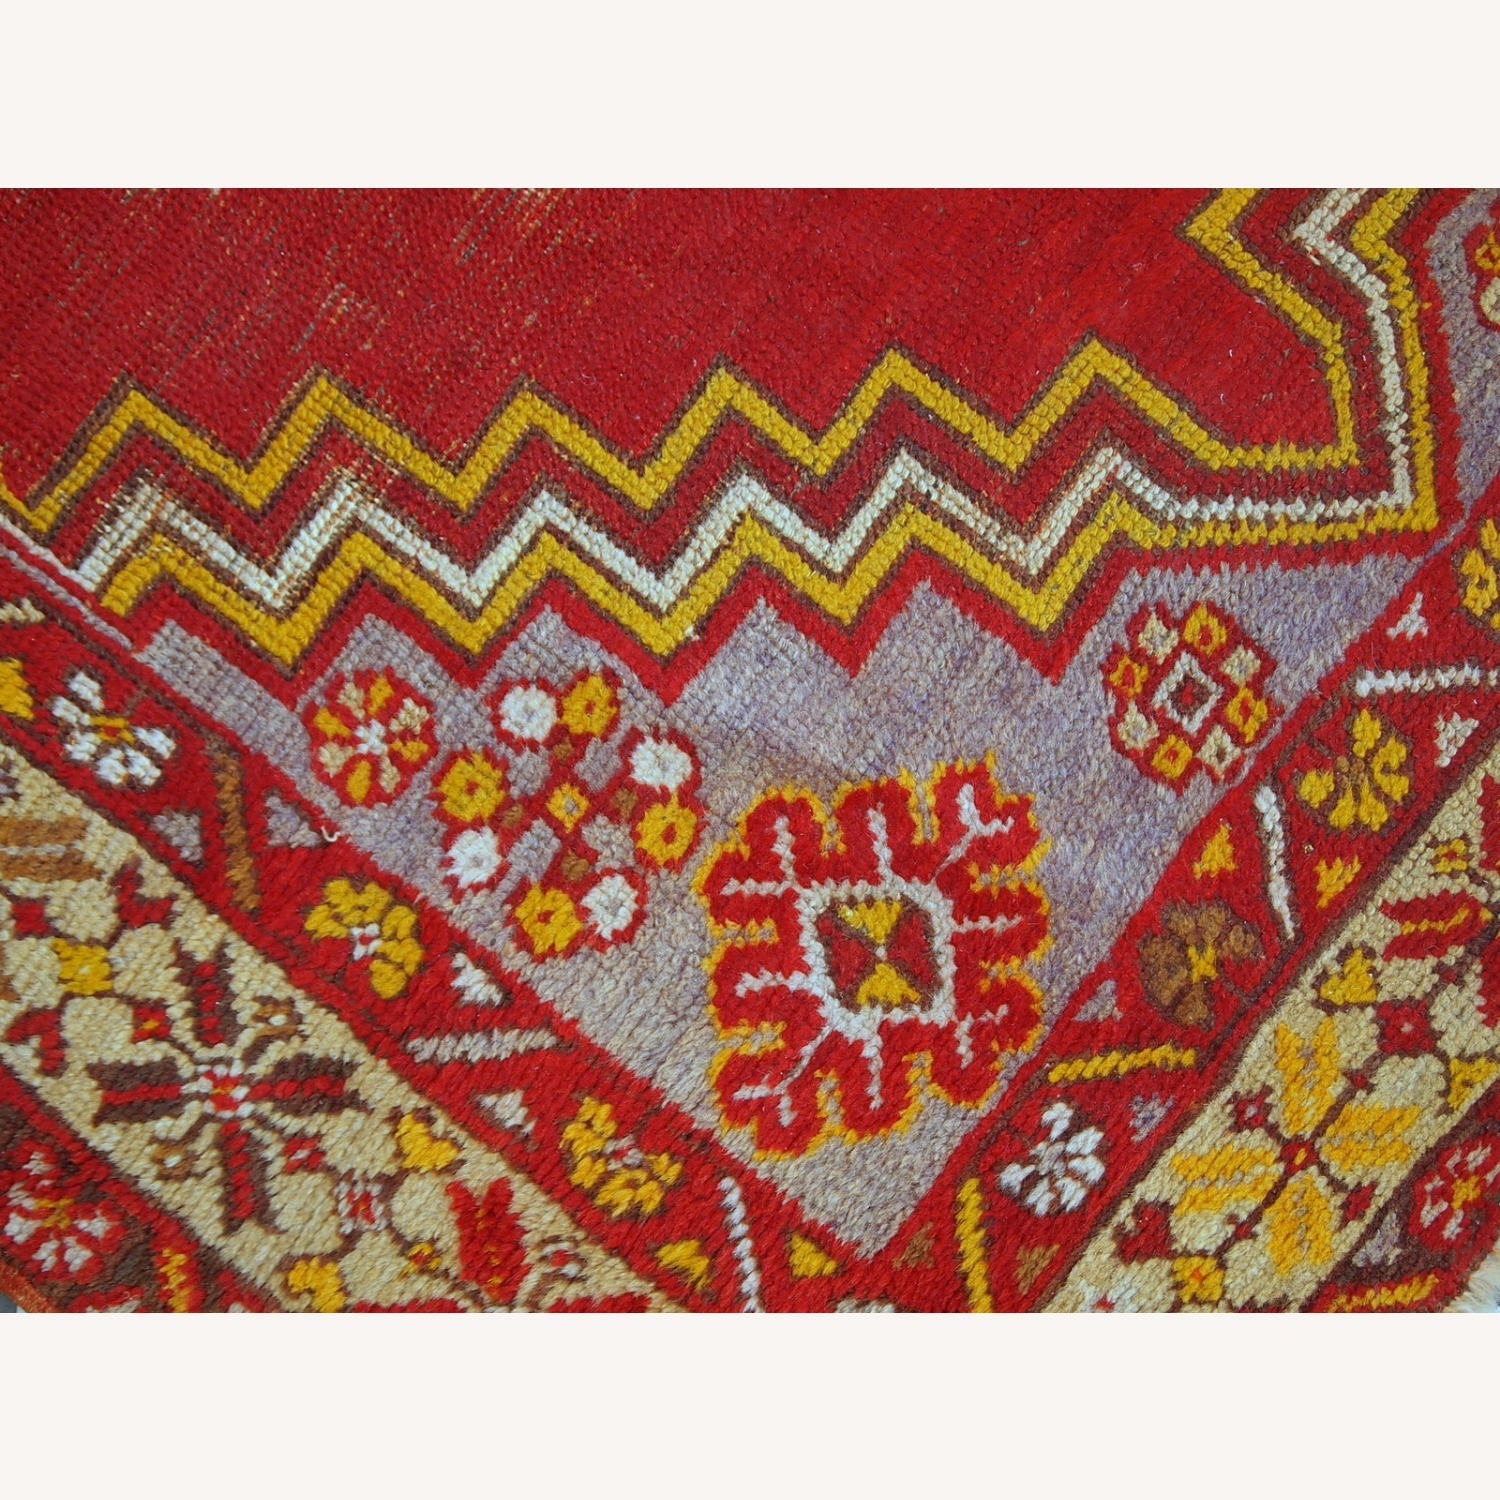 Handmade Antique Turkish Anatolian Rug - image-8